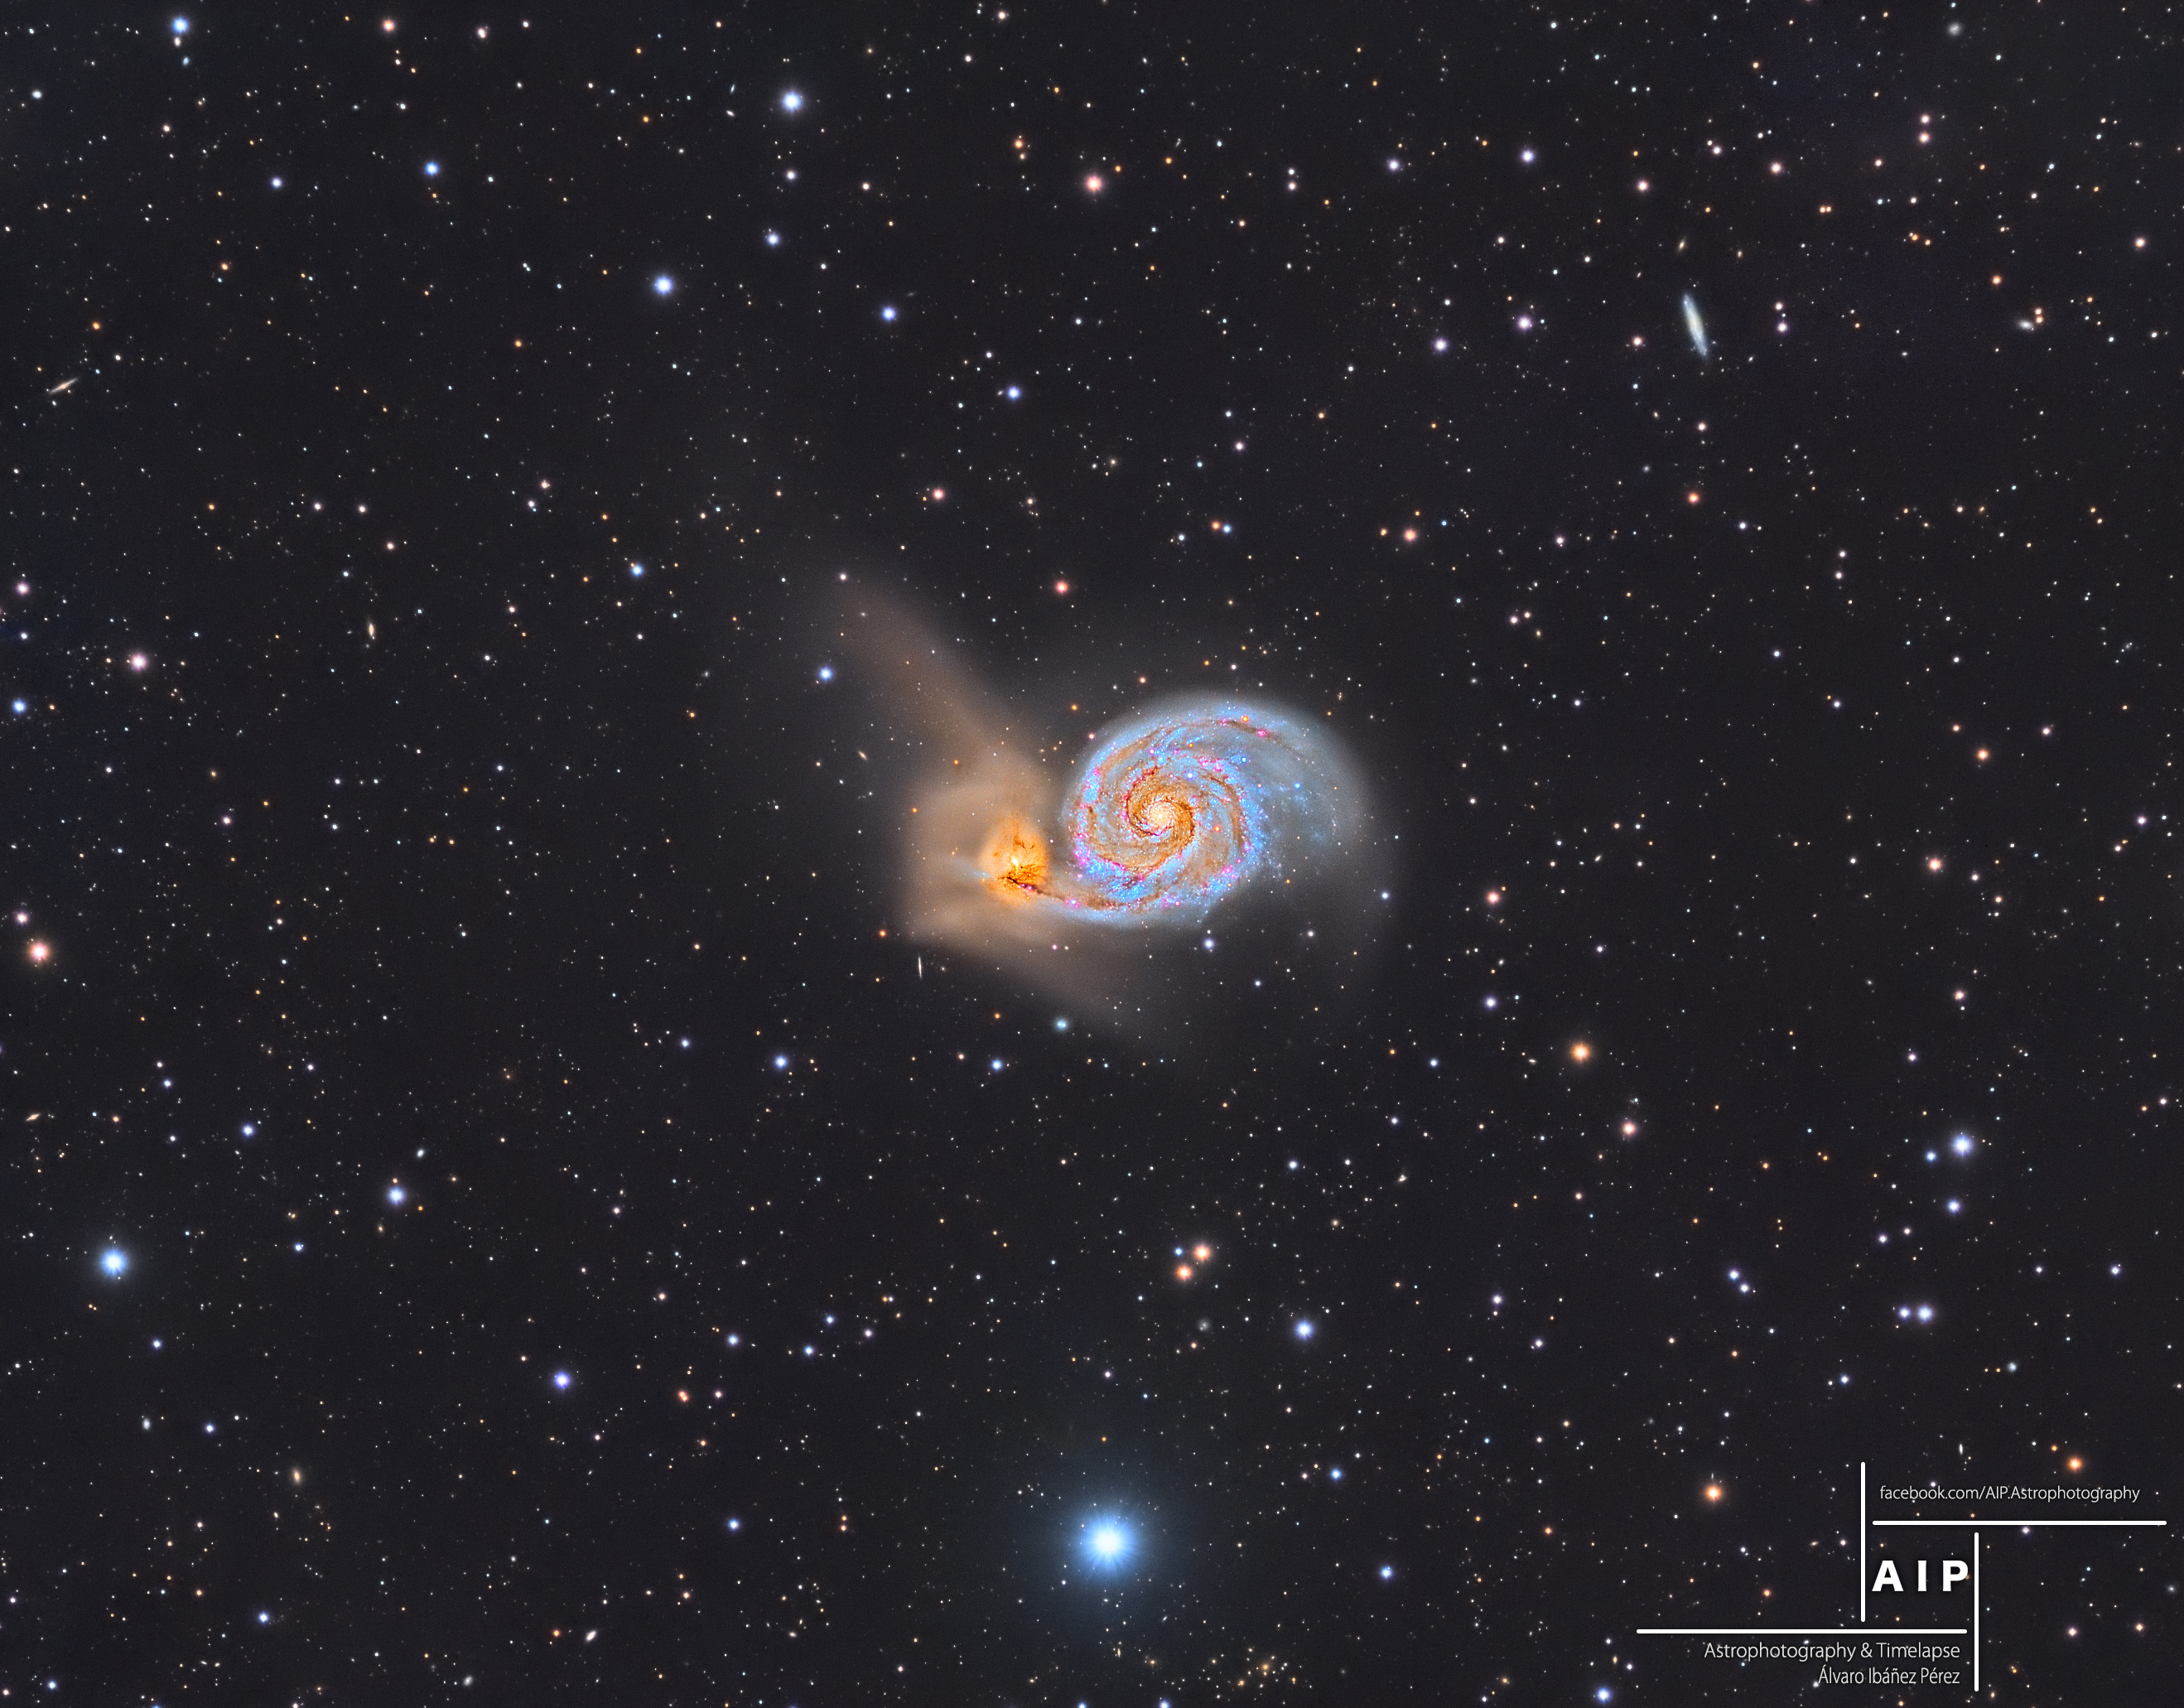 APOD: 2016 September 6 - The Whirlpool Galaxy and Beyond